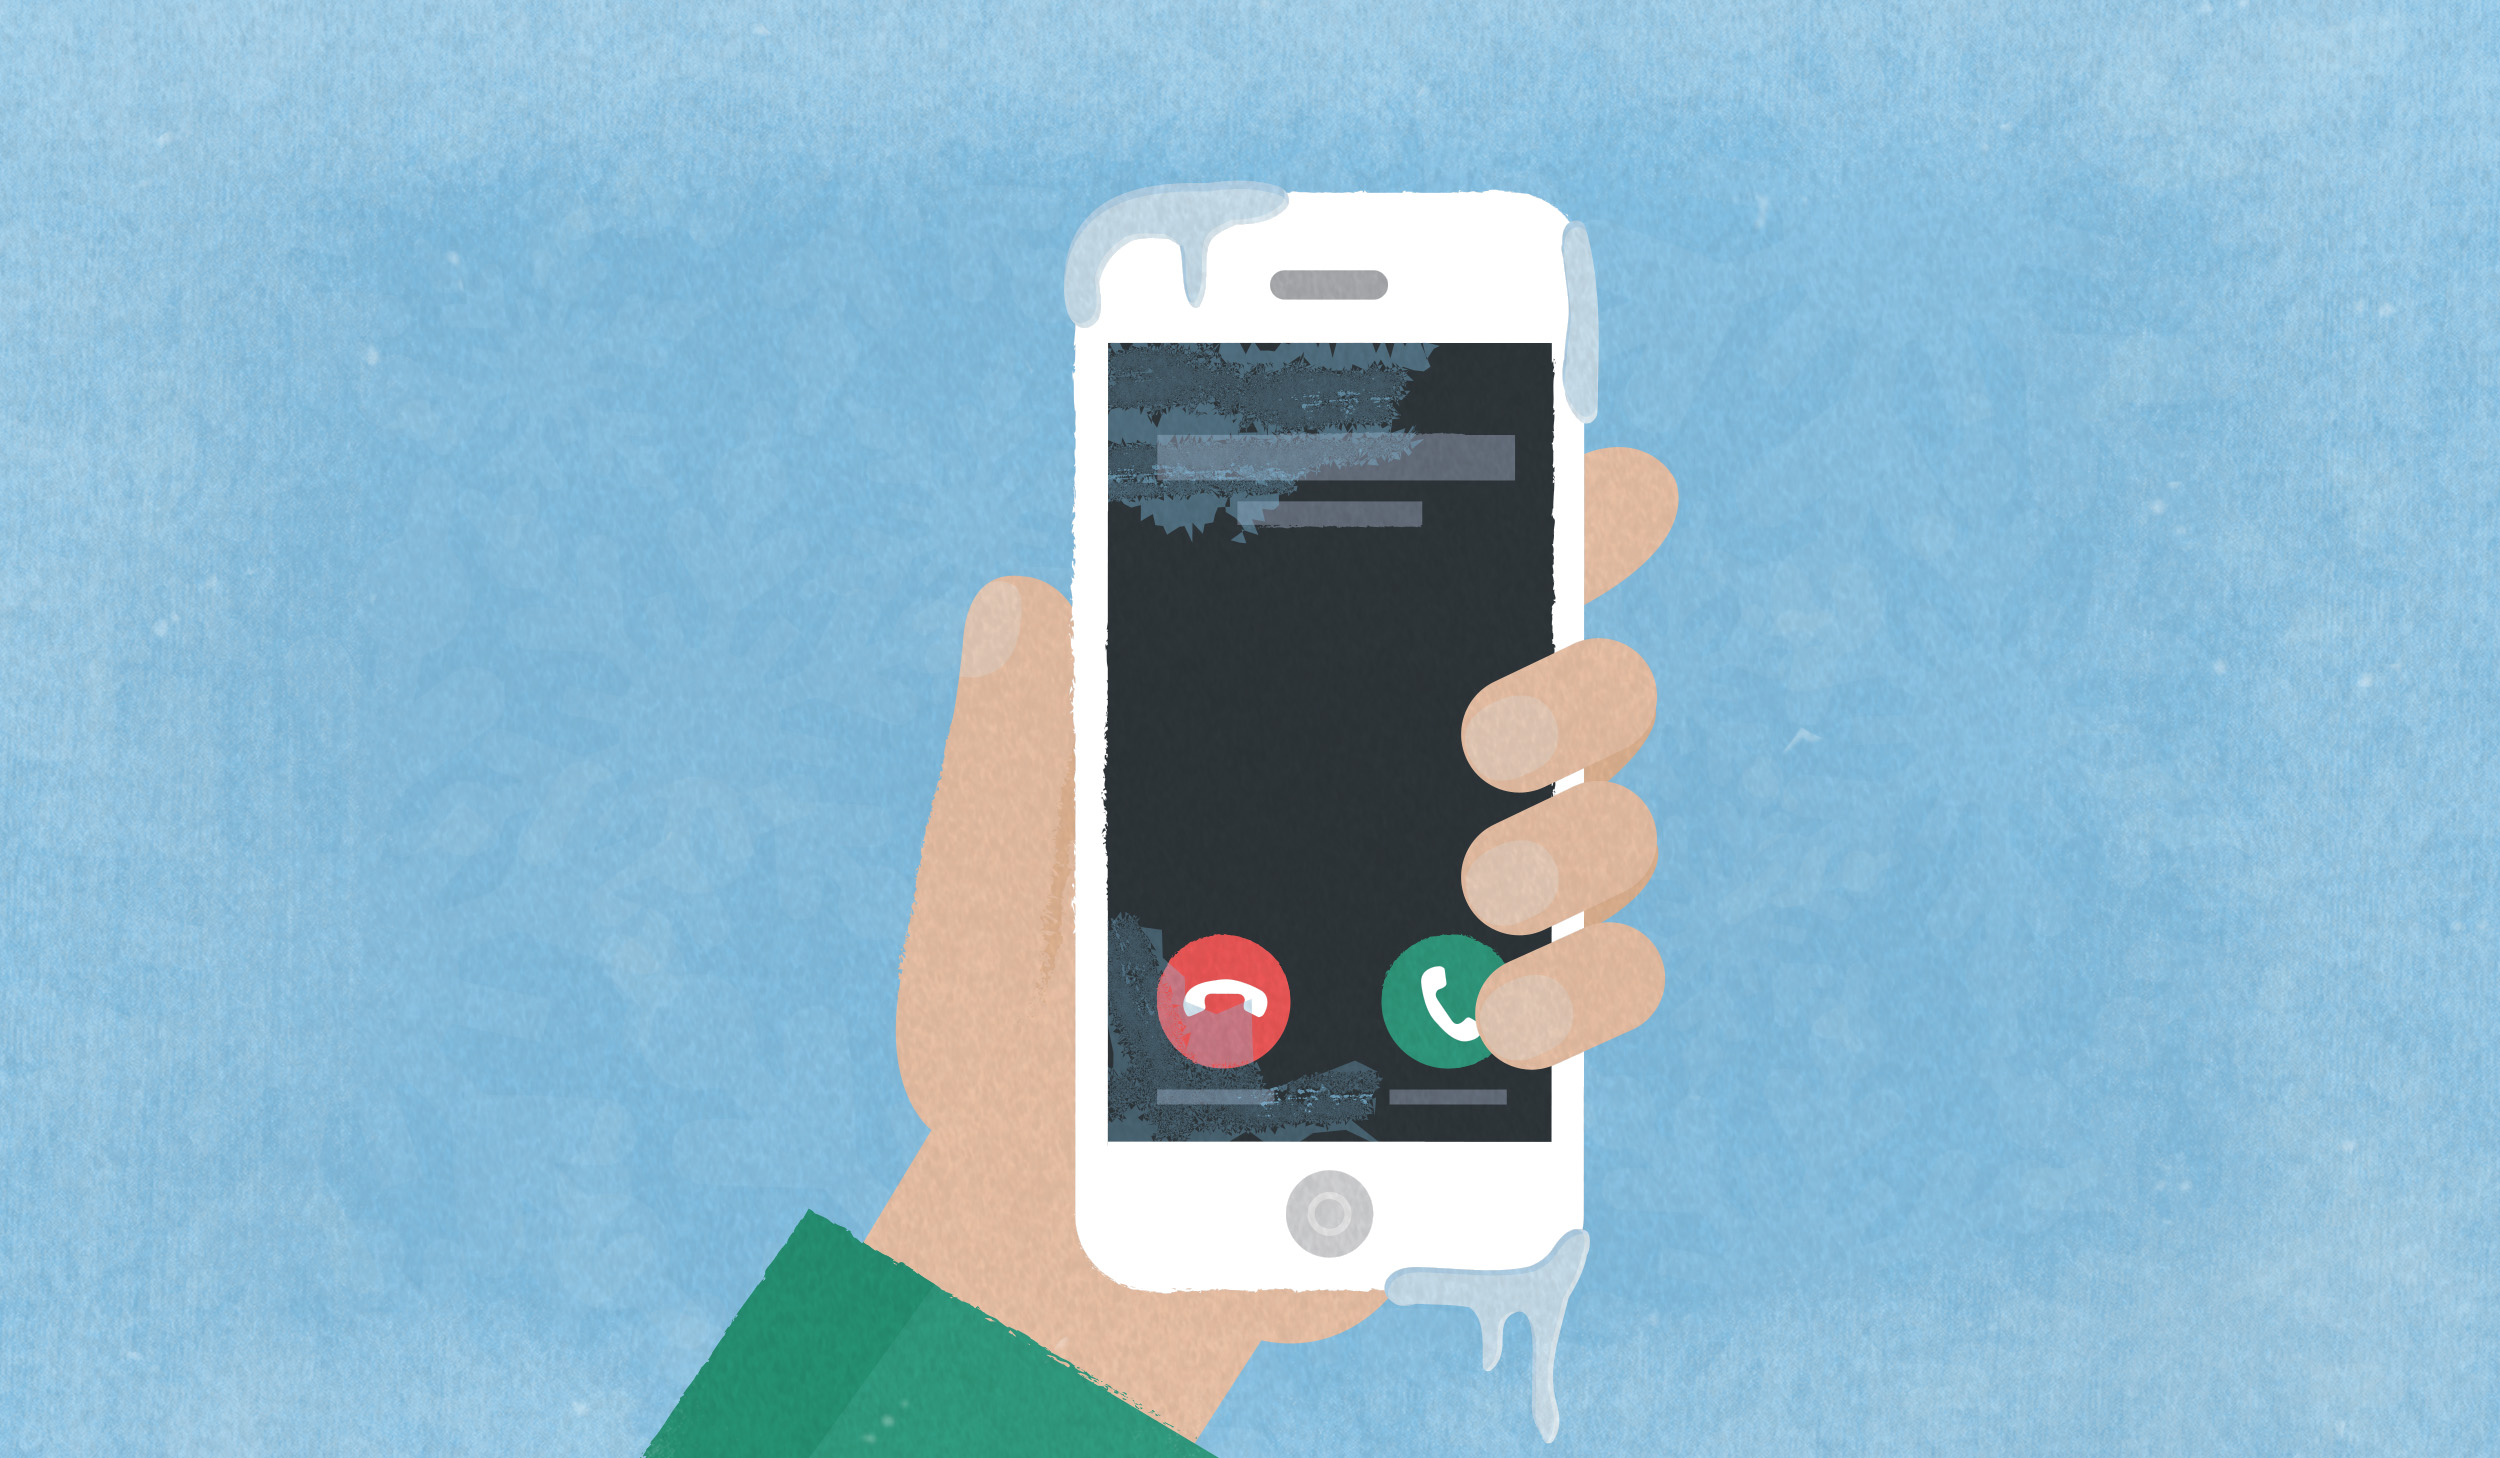 How to make a successful cold call in 5 steps